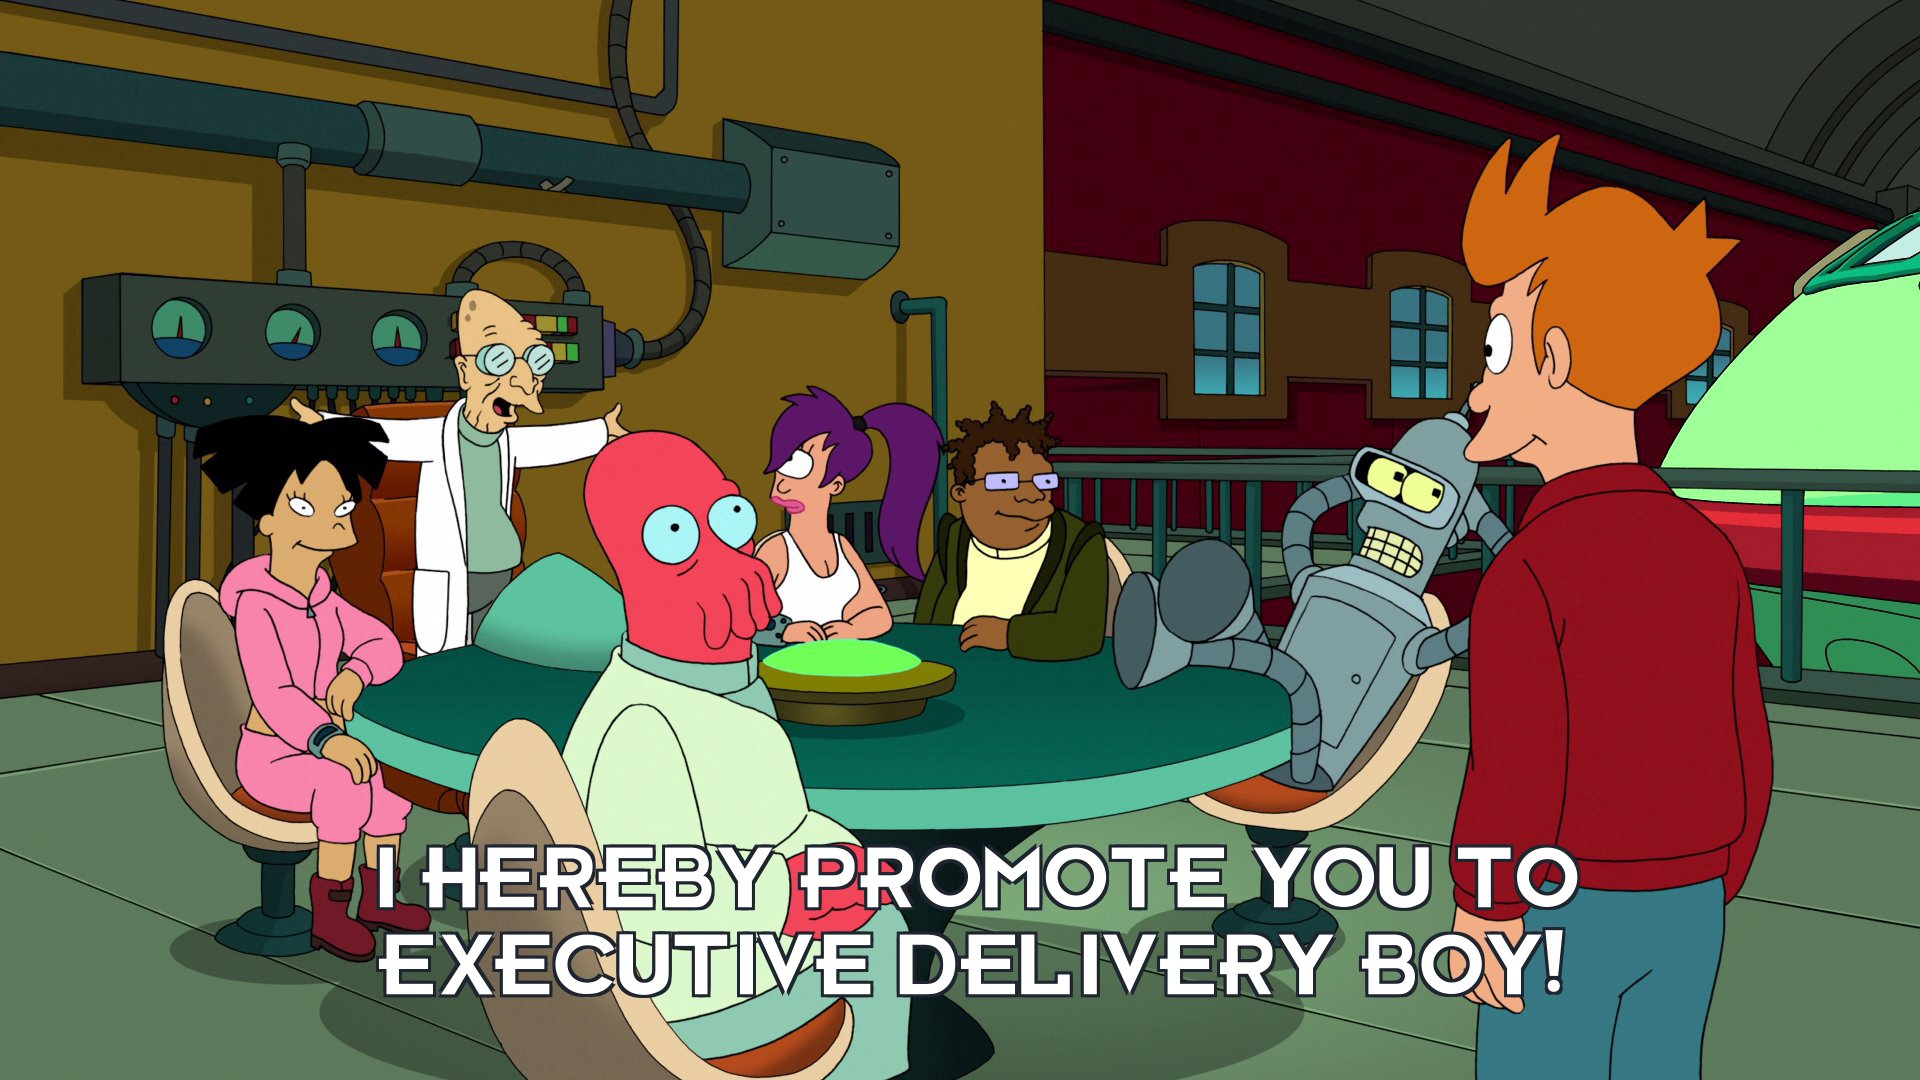 Prof Hubert J Farnsworth: I hereby promote you to executive delivery boy!